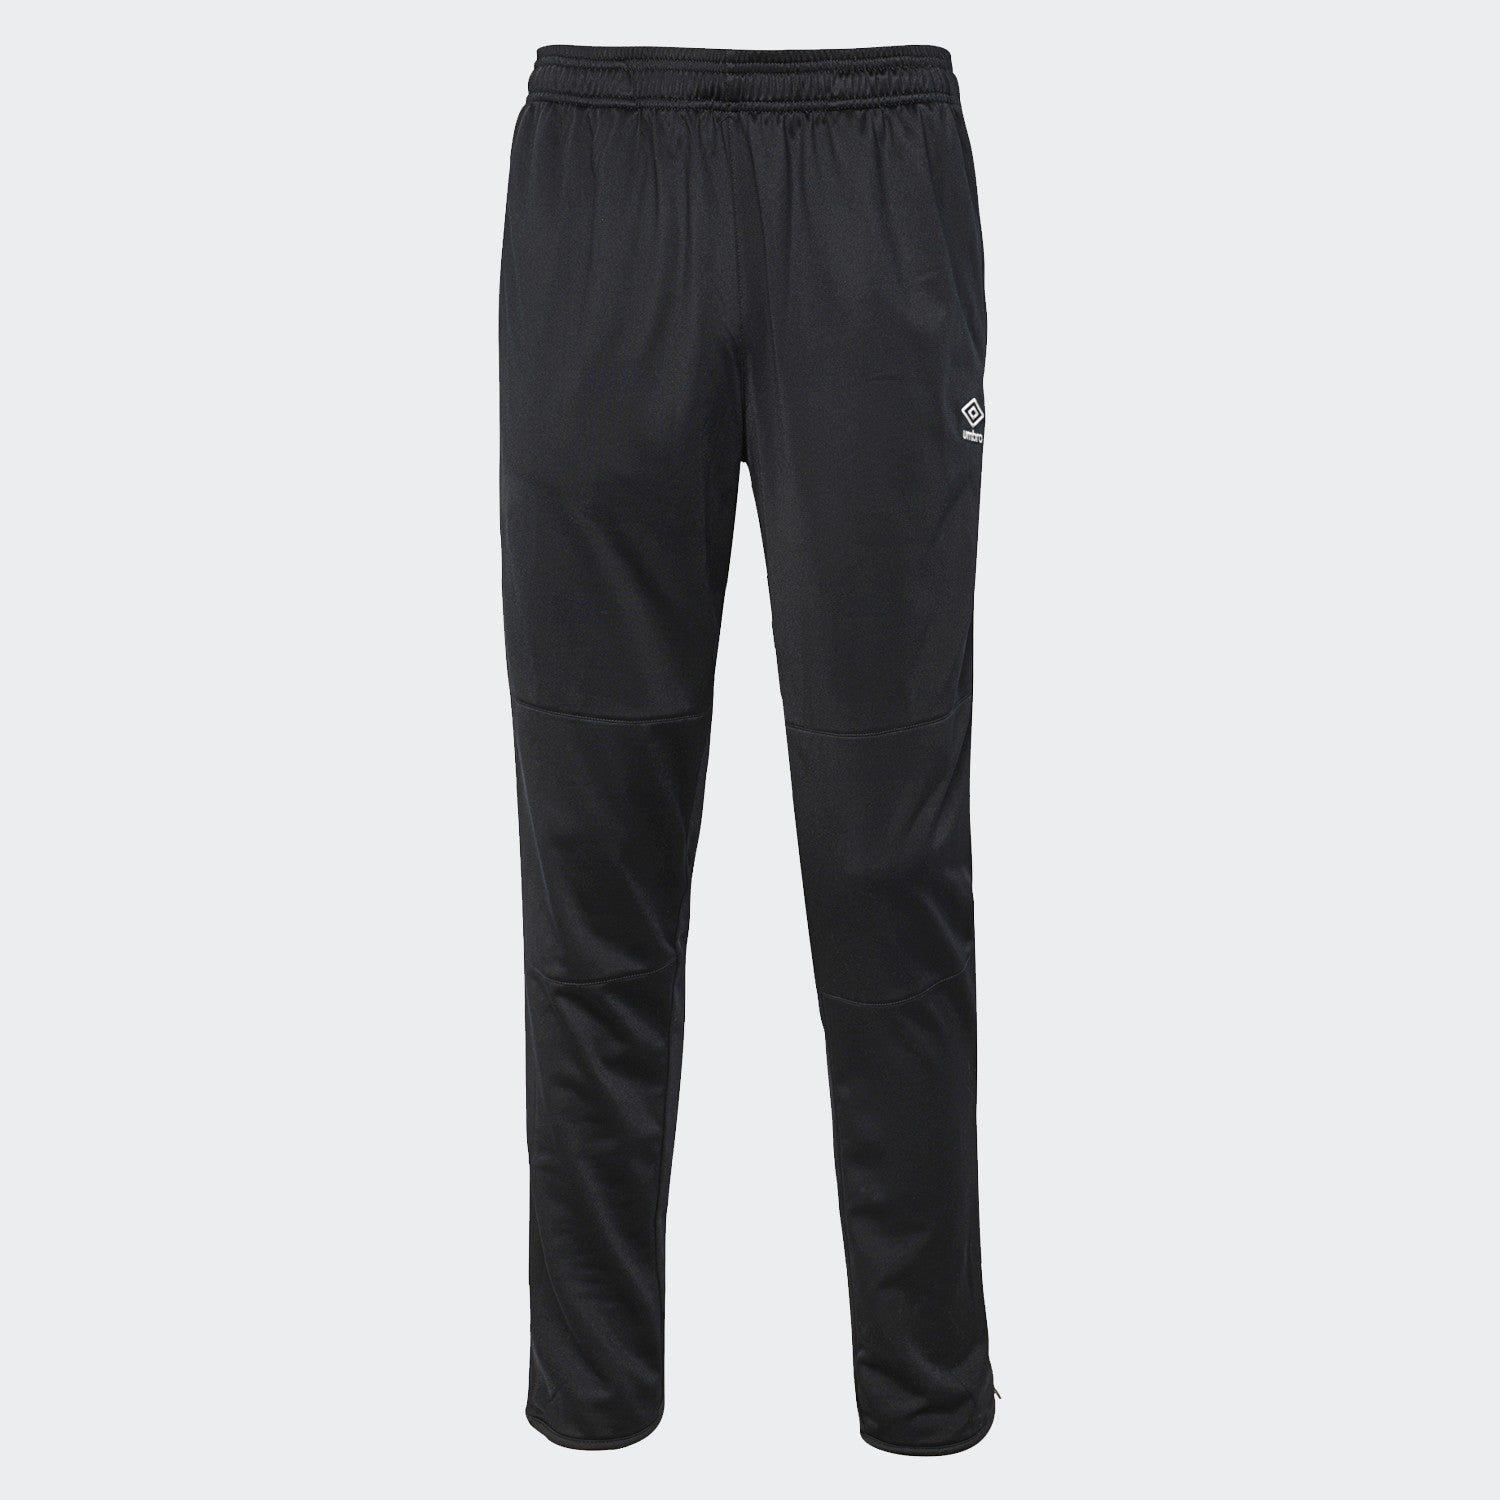 Men's Diamond Pants - Black